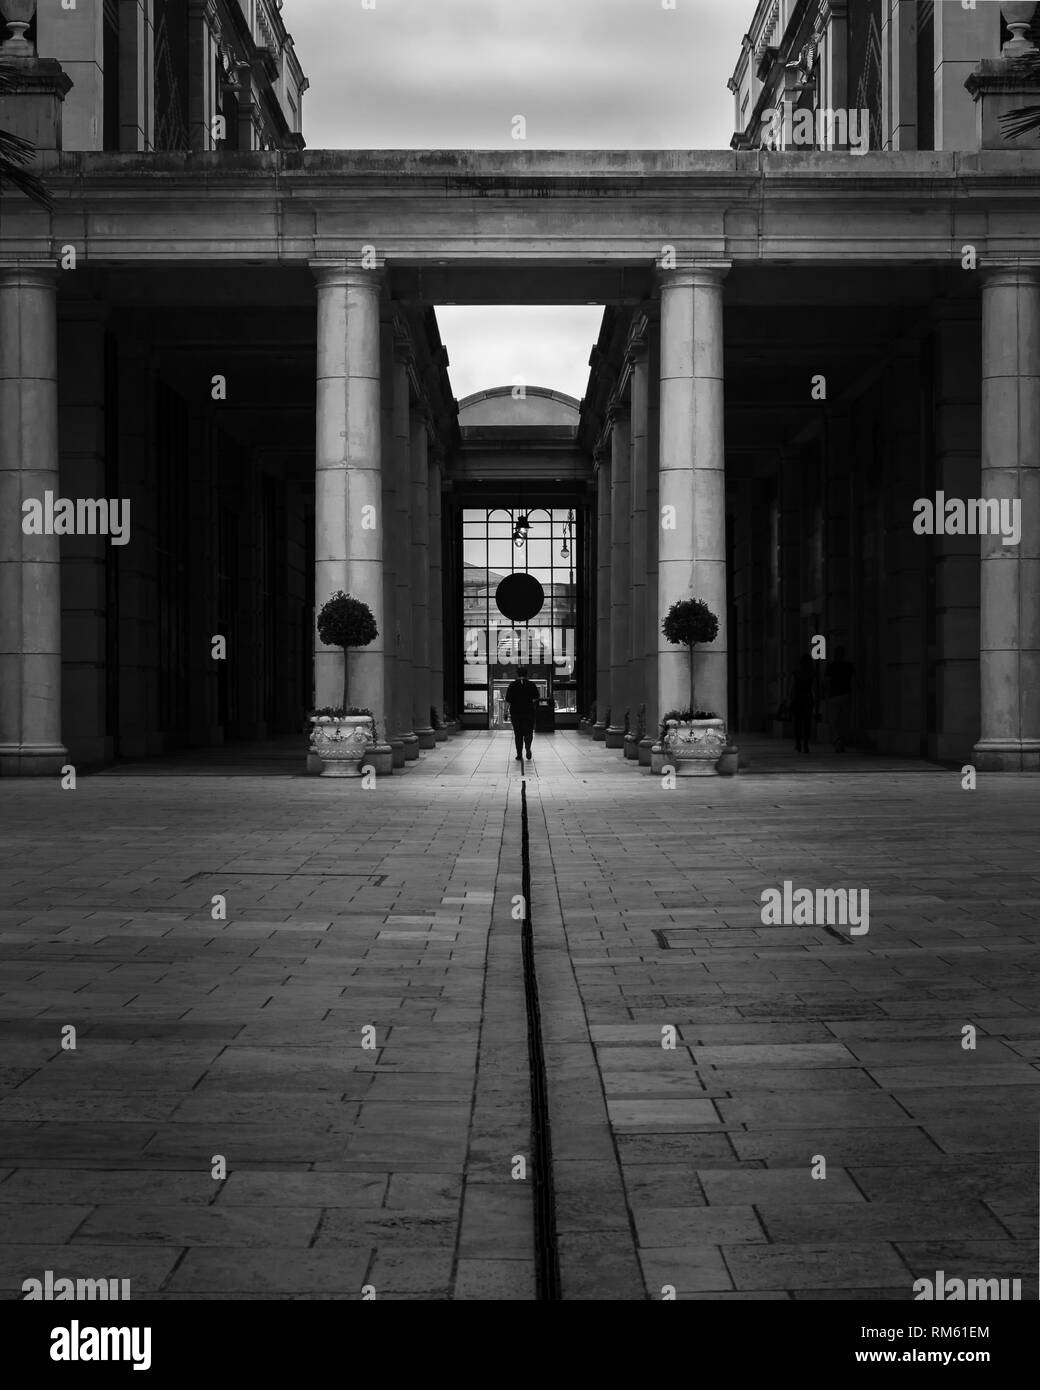 A man walks through an ostentatious tunnel surrounded by awesome architecture in black and white - Stock Image